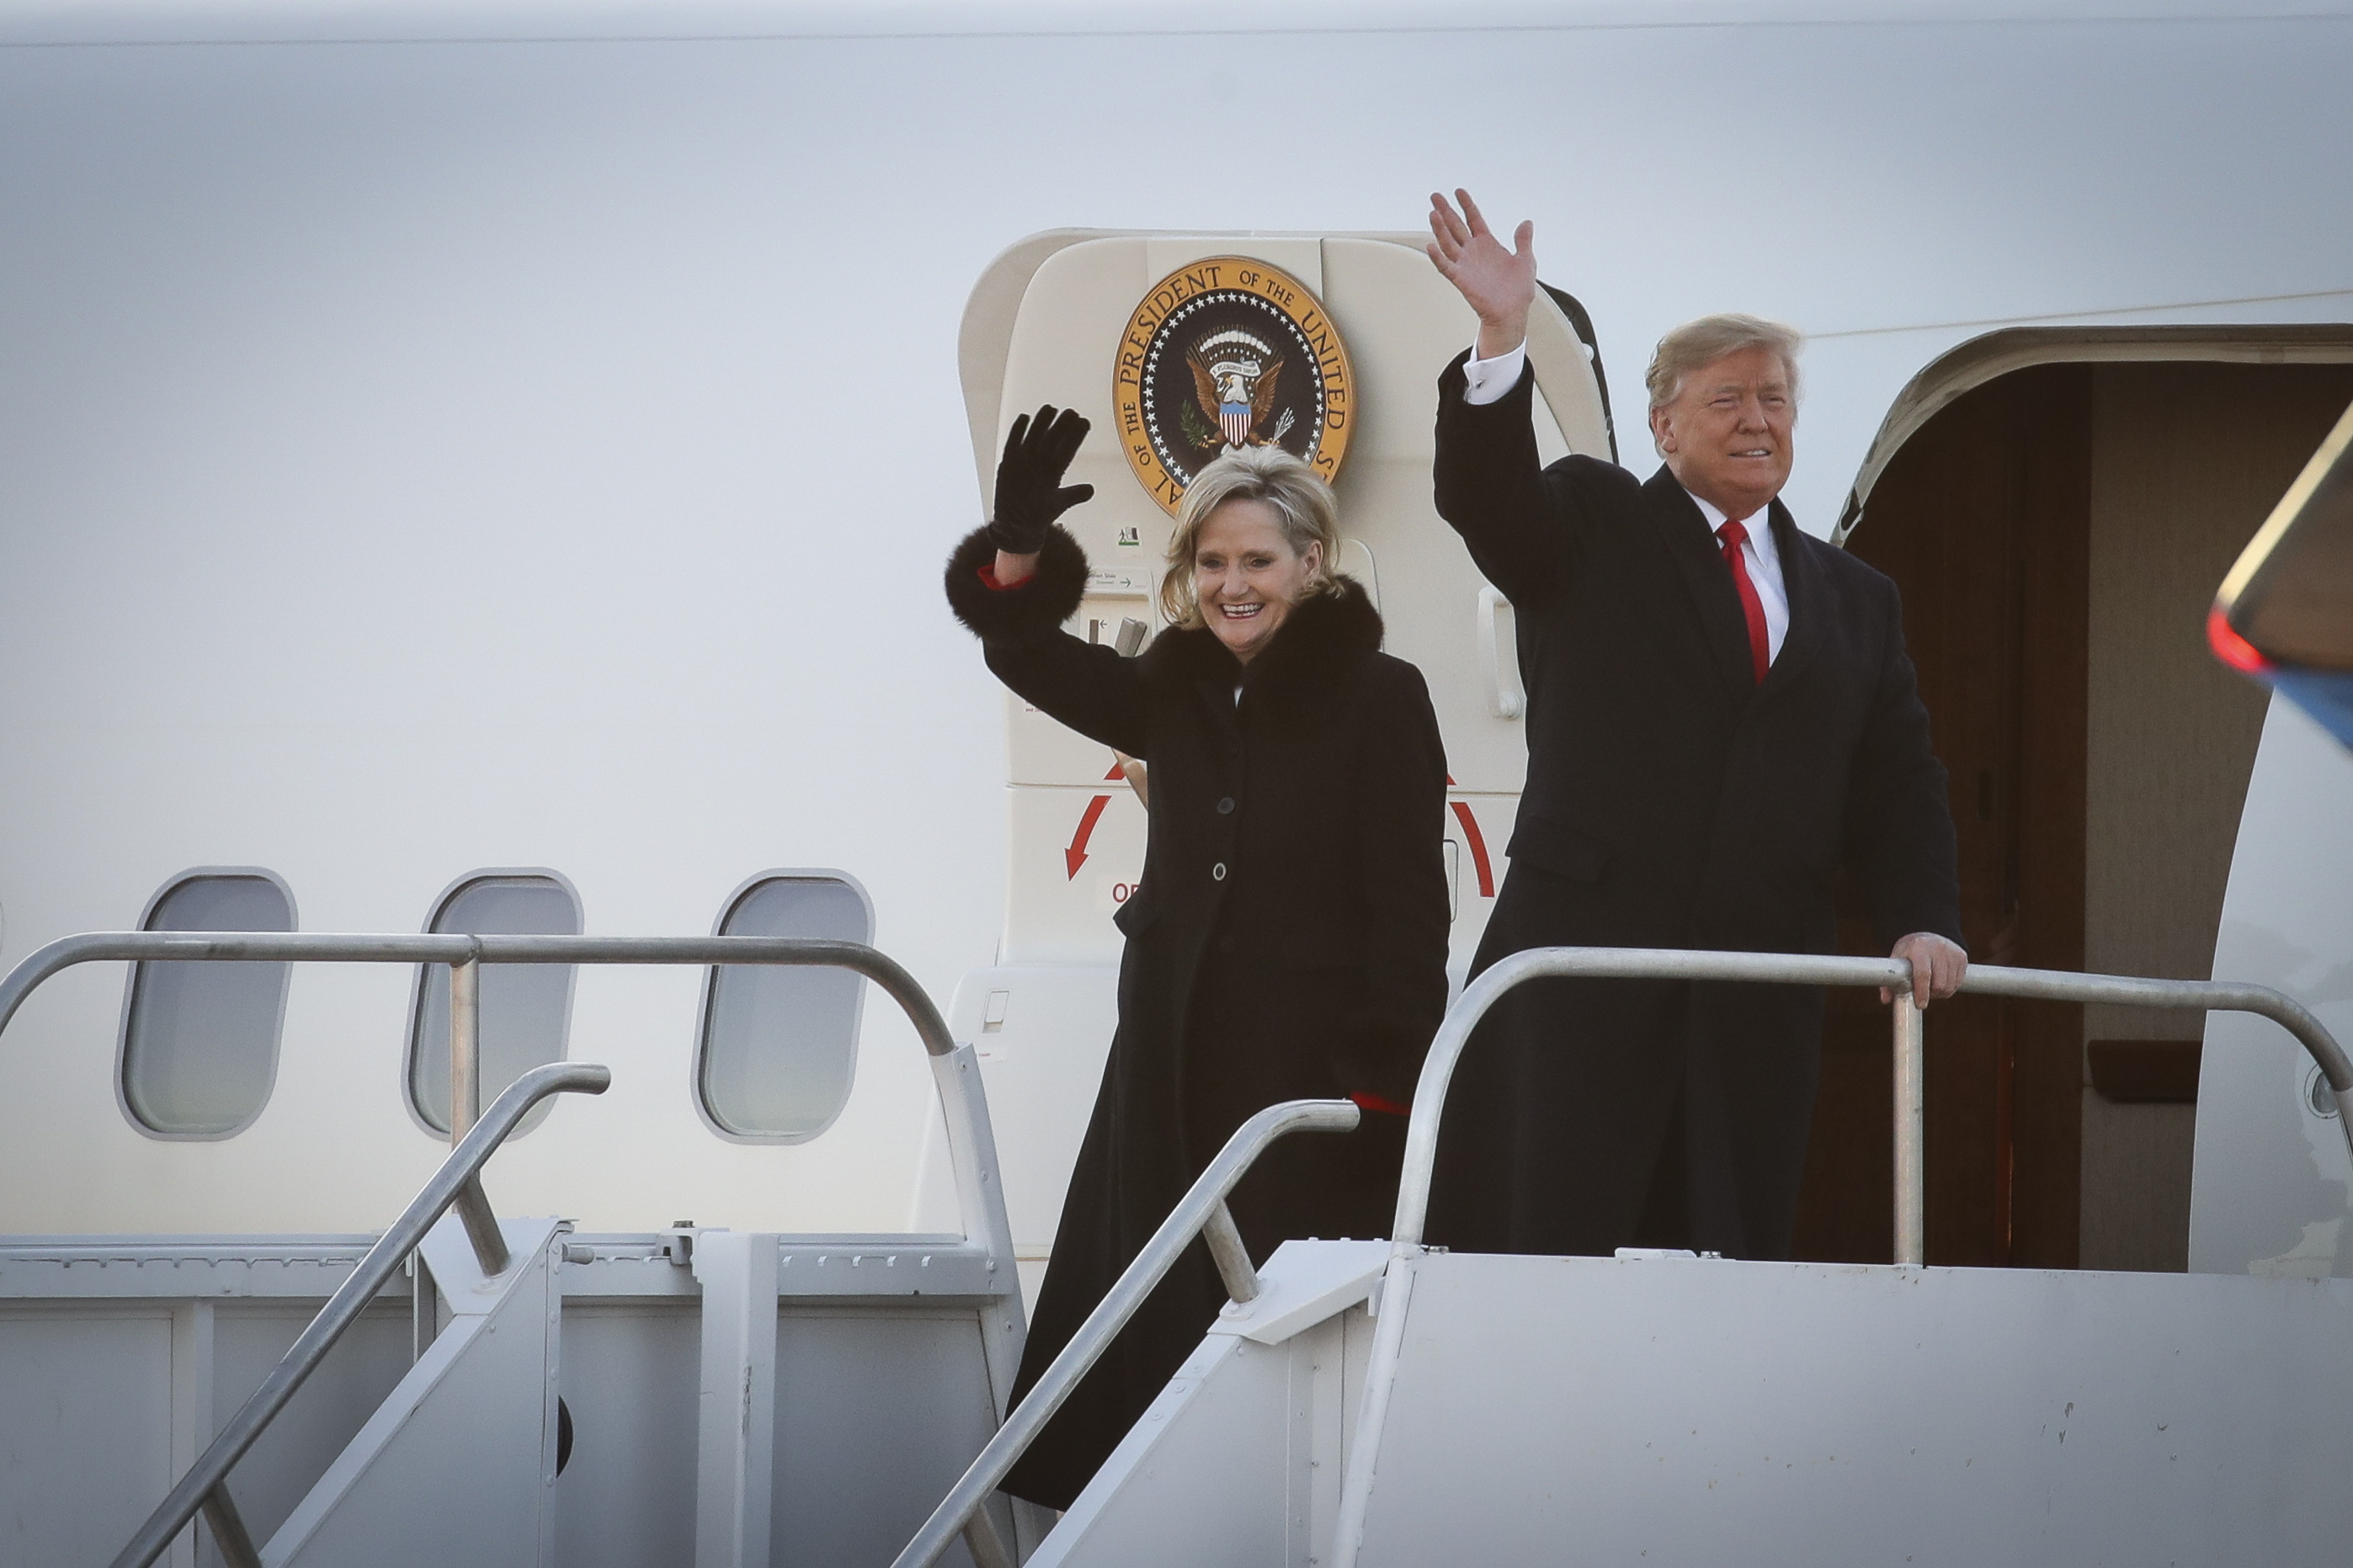 Republican candidate for U.S. Senate Cindy Hyde-Smith and President Donald Trump wave as they exit Air Force One as they arrive for a rally at the Tupelo Regional Airport, November 26, 2018 in Tupelo, Mississippi.